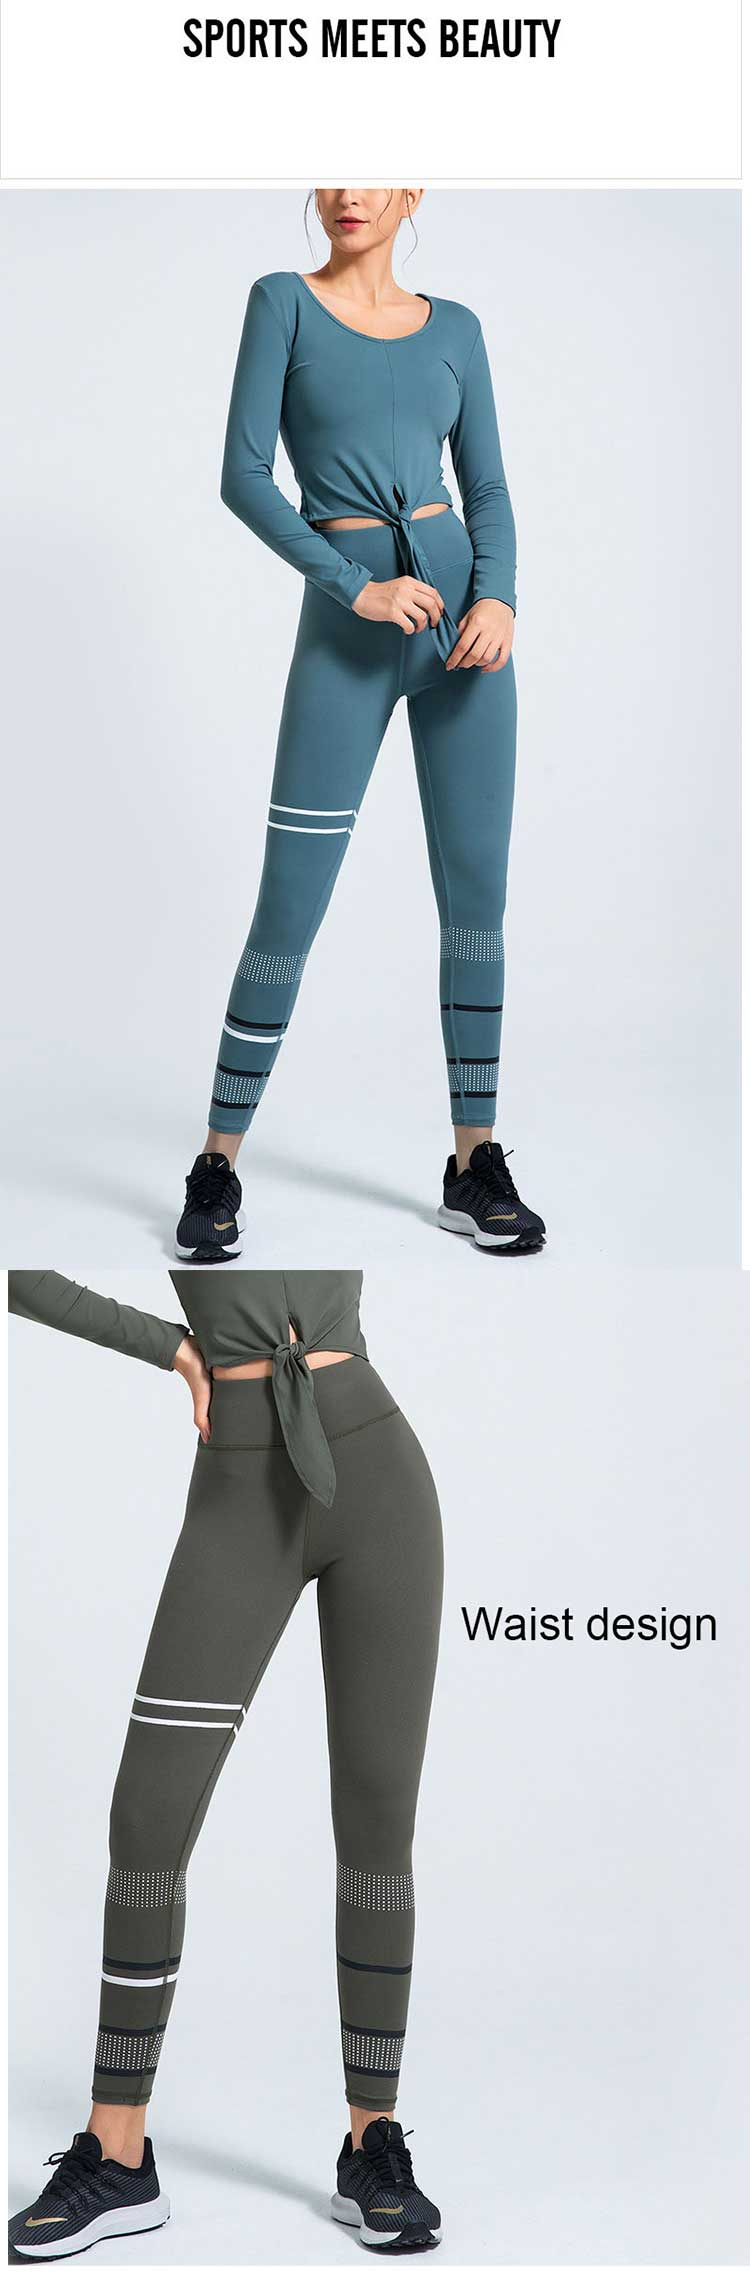 Classic-and-durable-straight-leg-yoga-pants,-with-a-solid-texture-and-performance